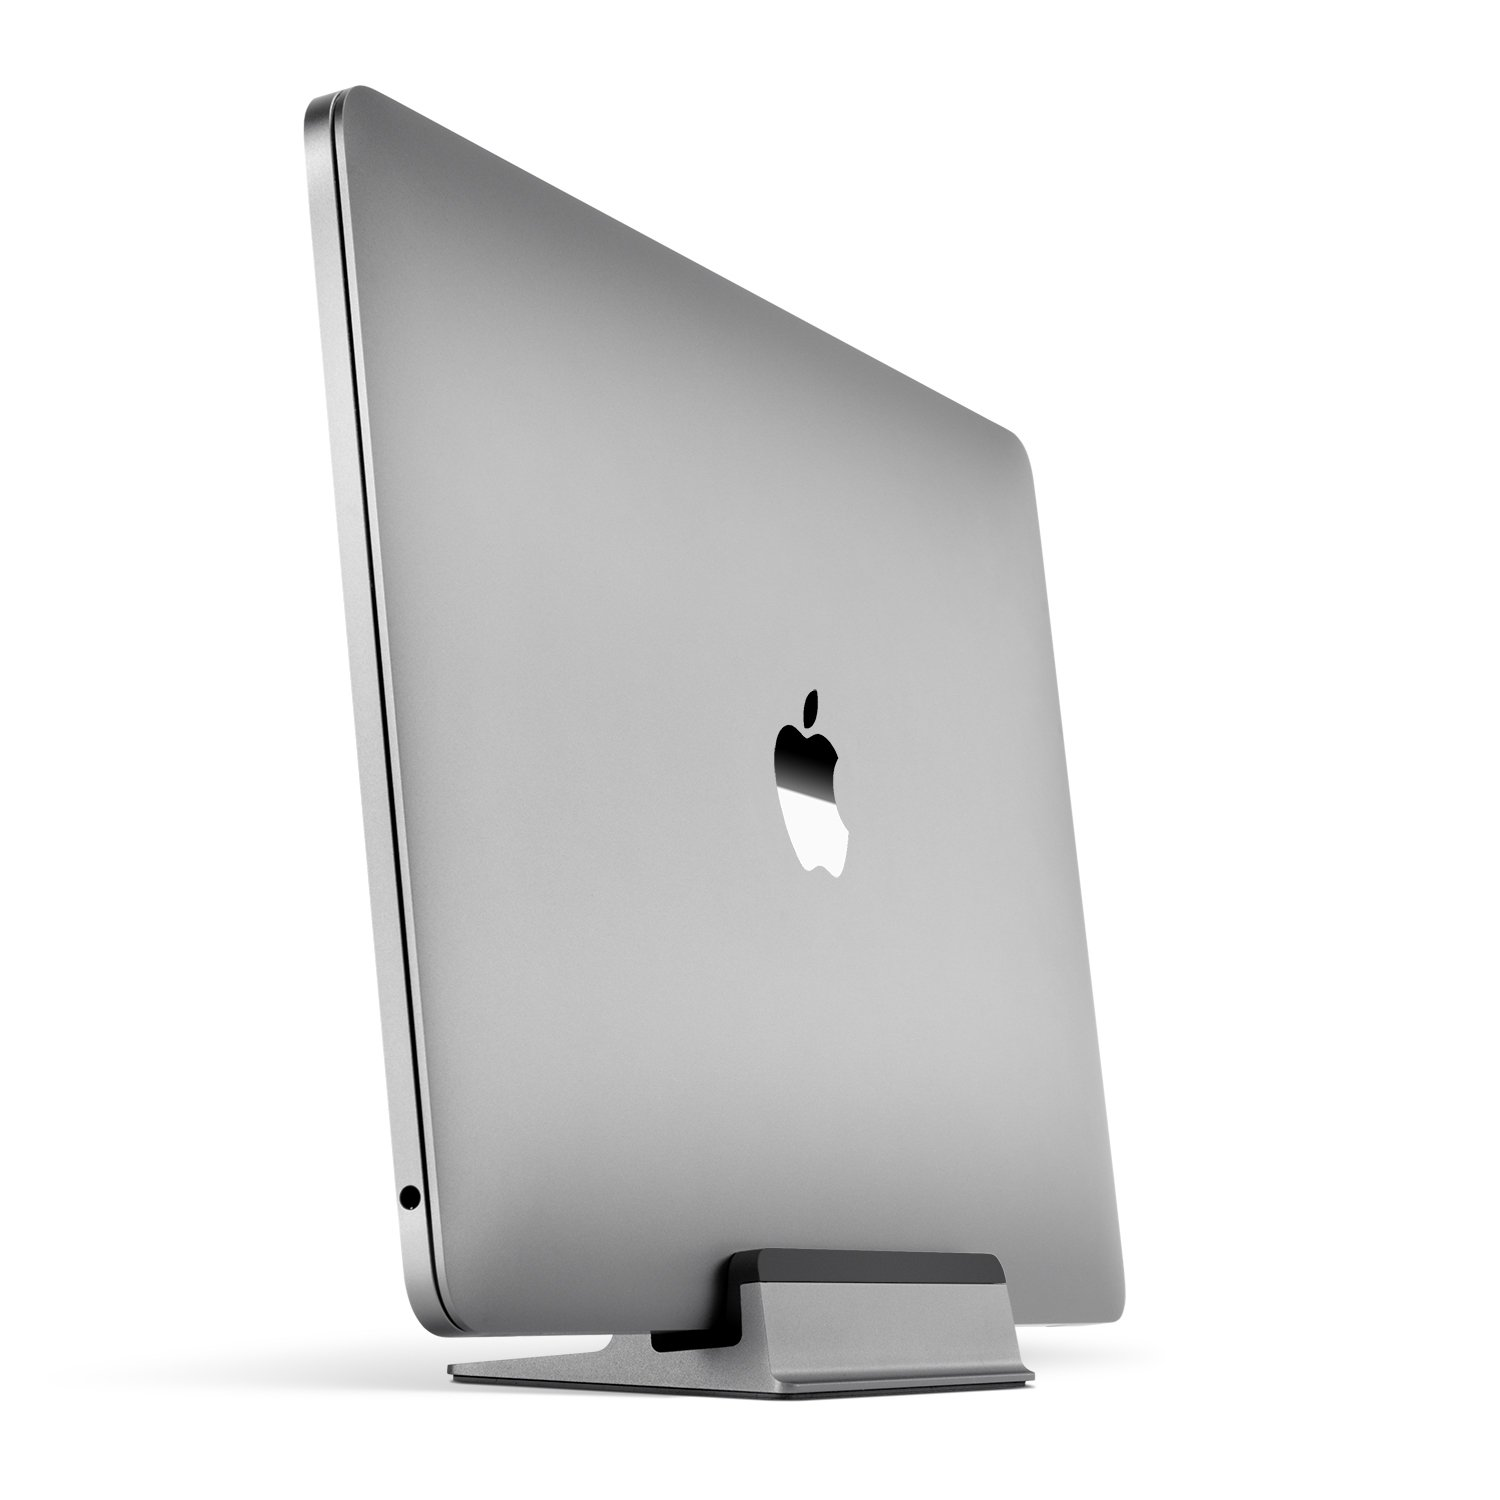 UPPERCASE KRADL Small Profile Space Saving Aluminum Vertical Stand for MacBook Pro 13'' or 15'' (2016 2017 2018 Releases) (Space Gray/Black)